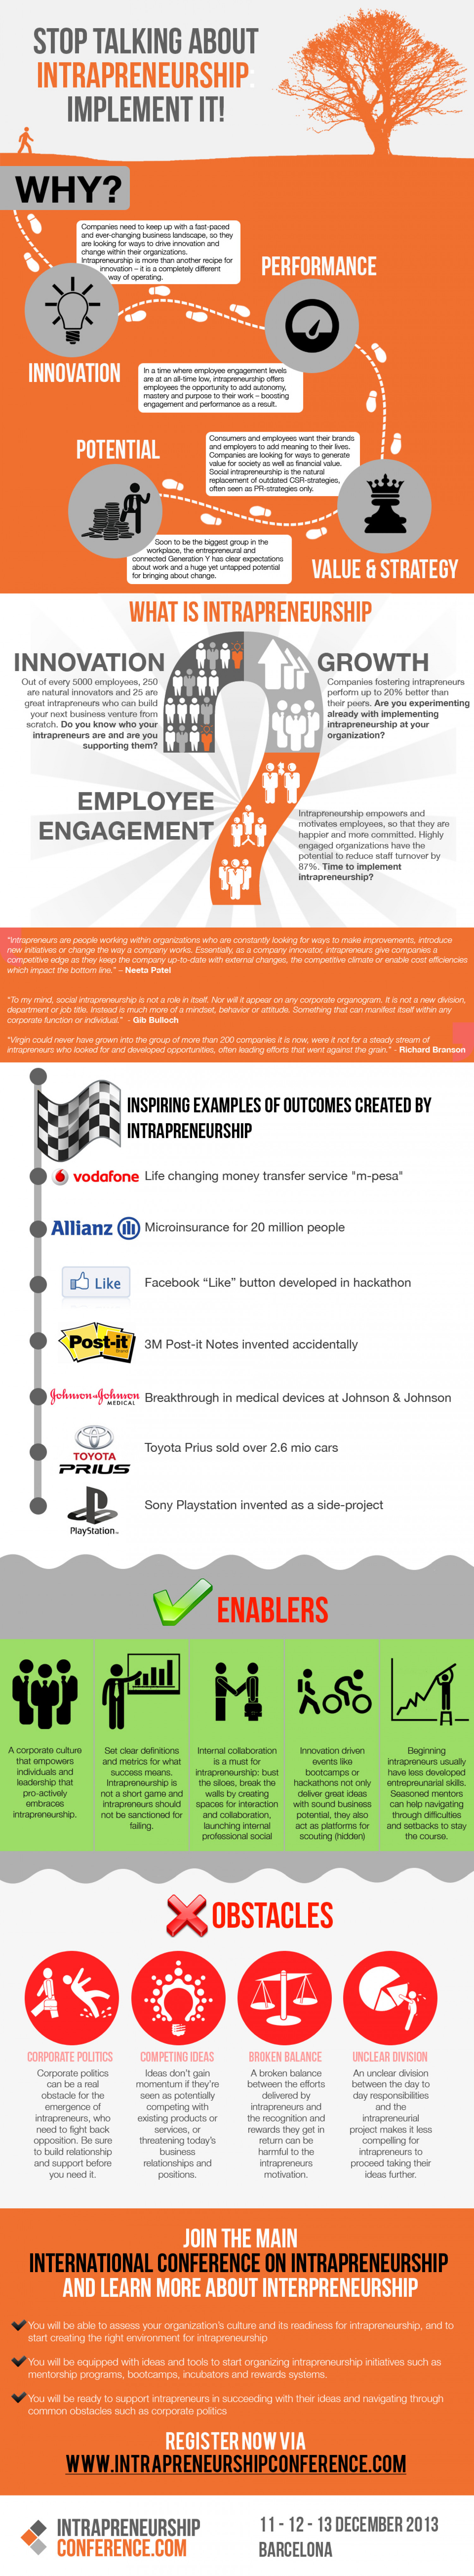 Stop talking about Intrapreneurship - start implementing! Infographic